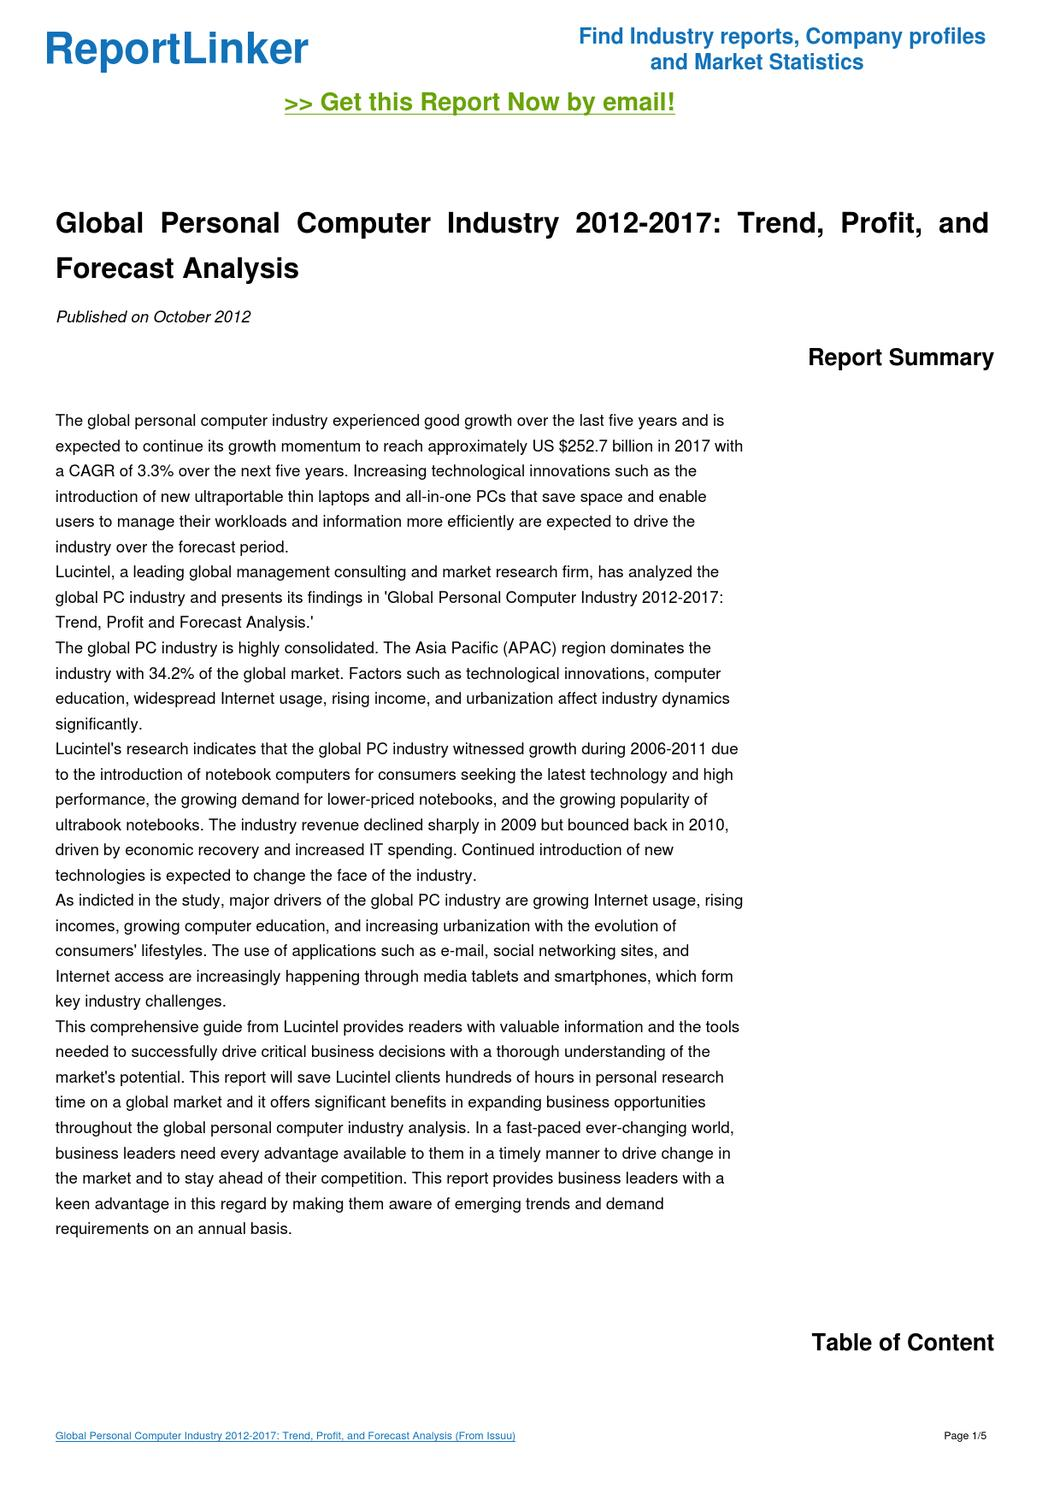 an analysis of the german market for personal computers Market research and statistics on germany export markets have made the german economy perform levels of research and analysis for major and.